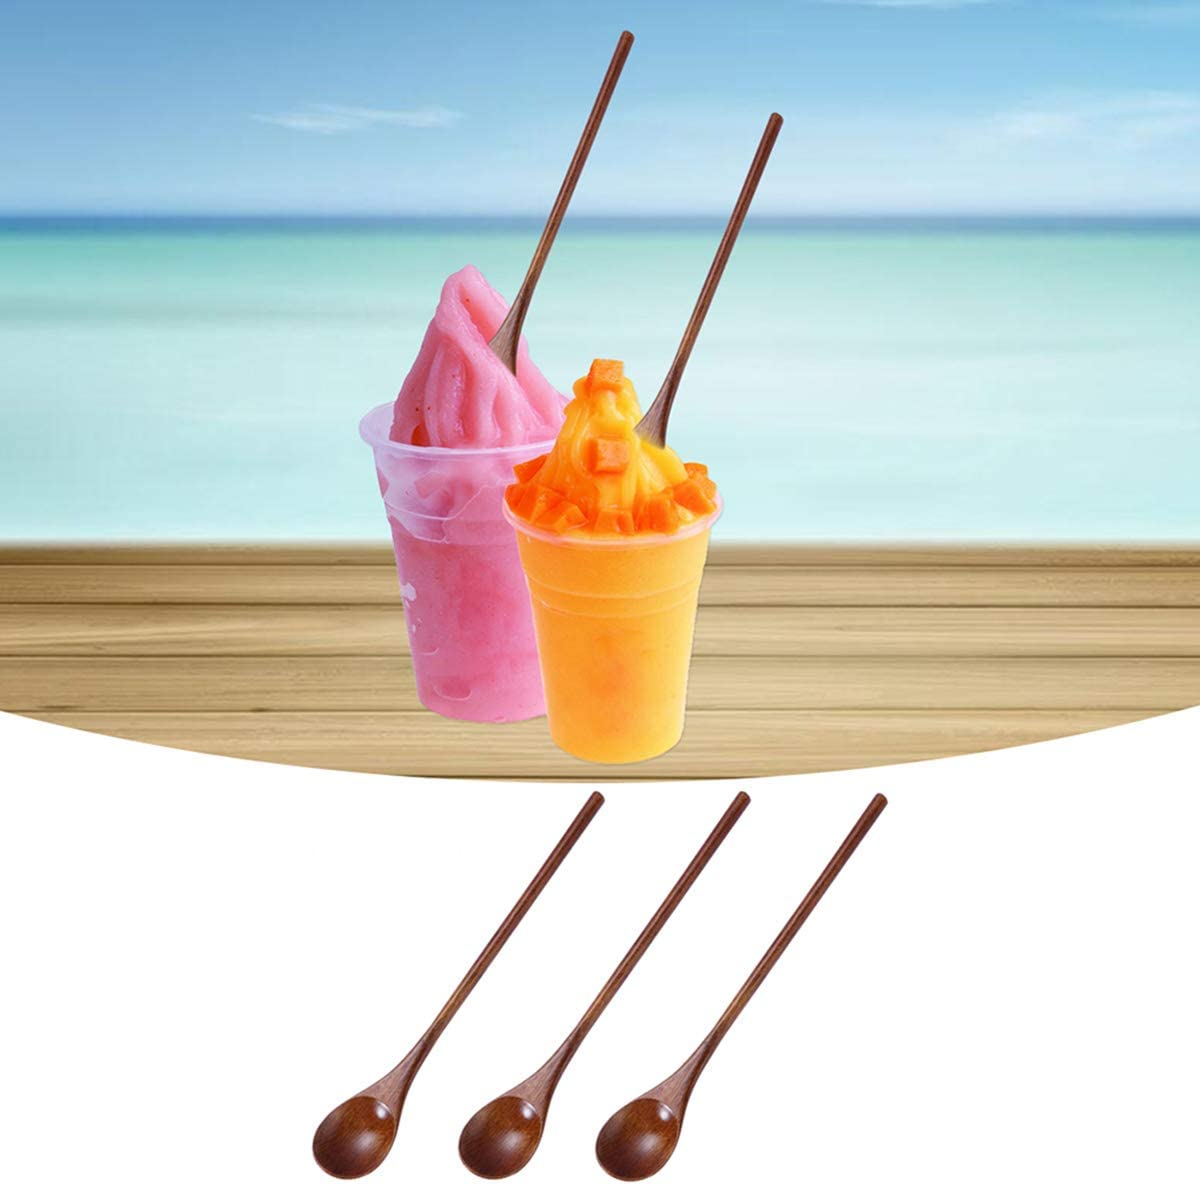 BESTONZON 3pcs Soup Spoons Eco Friendly Natural Wooden Coffee Tea Spoons Dolphin Stirring Spoons